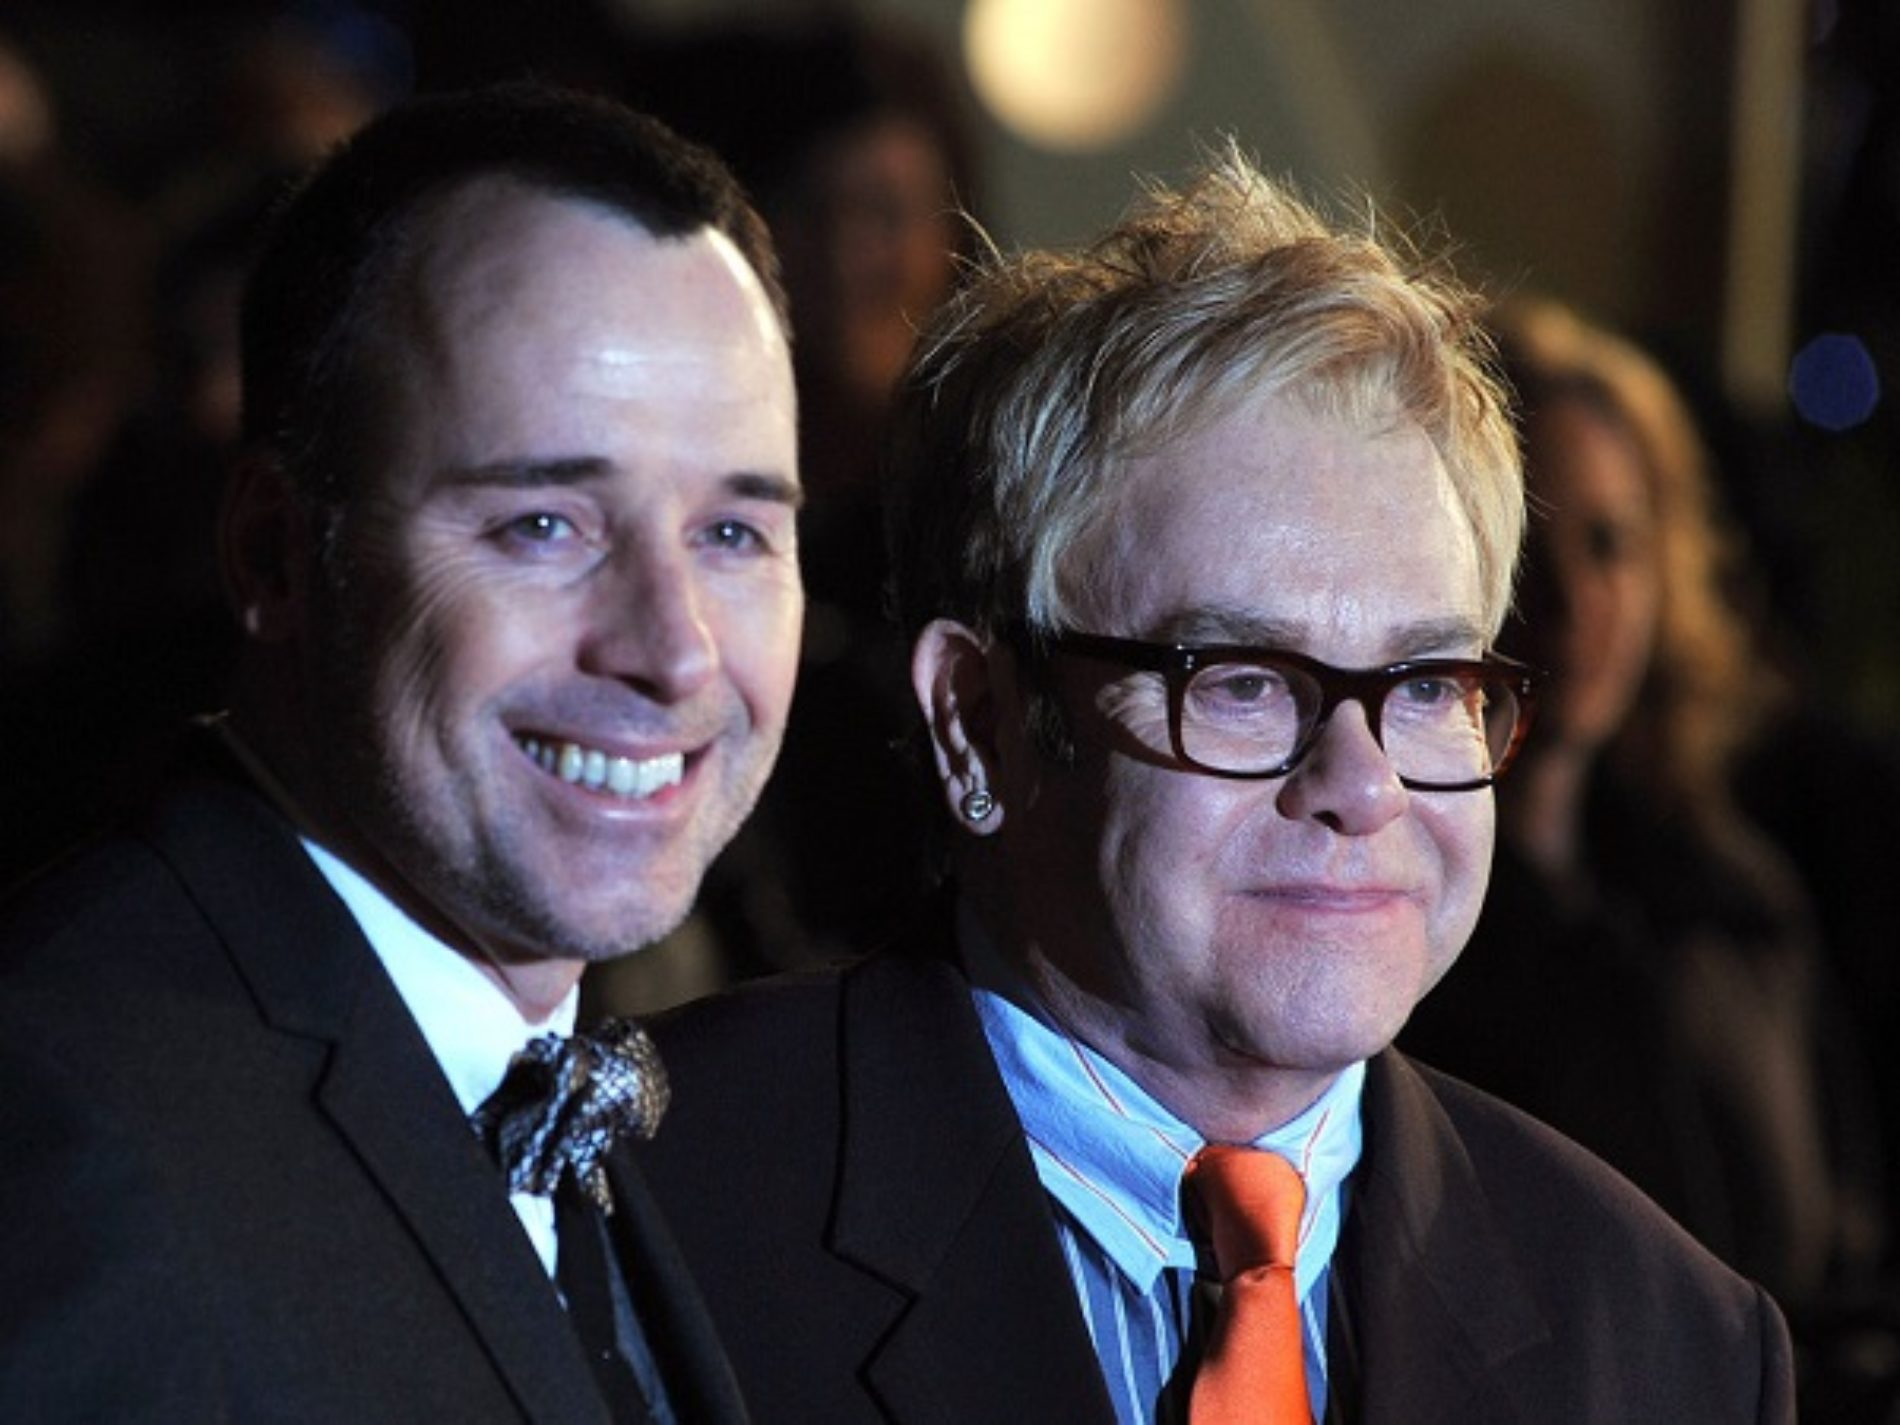 'Jesus would support same-sex marriage.' – says Elton John